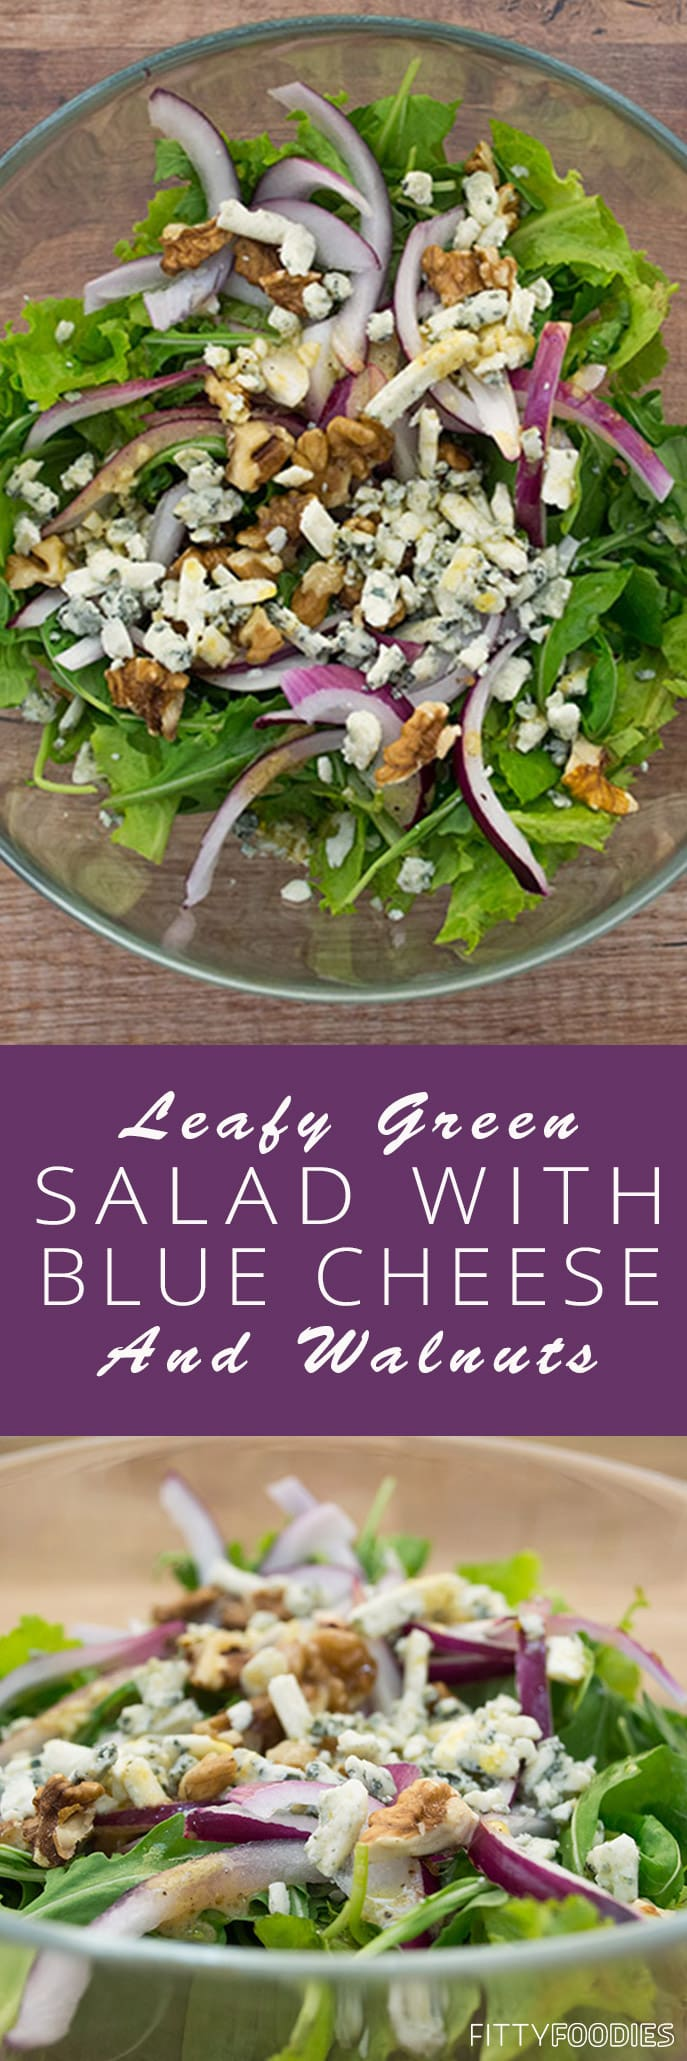 [picture of leafy green salad with blue cheese & walnuts]